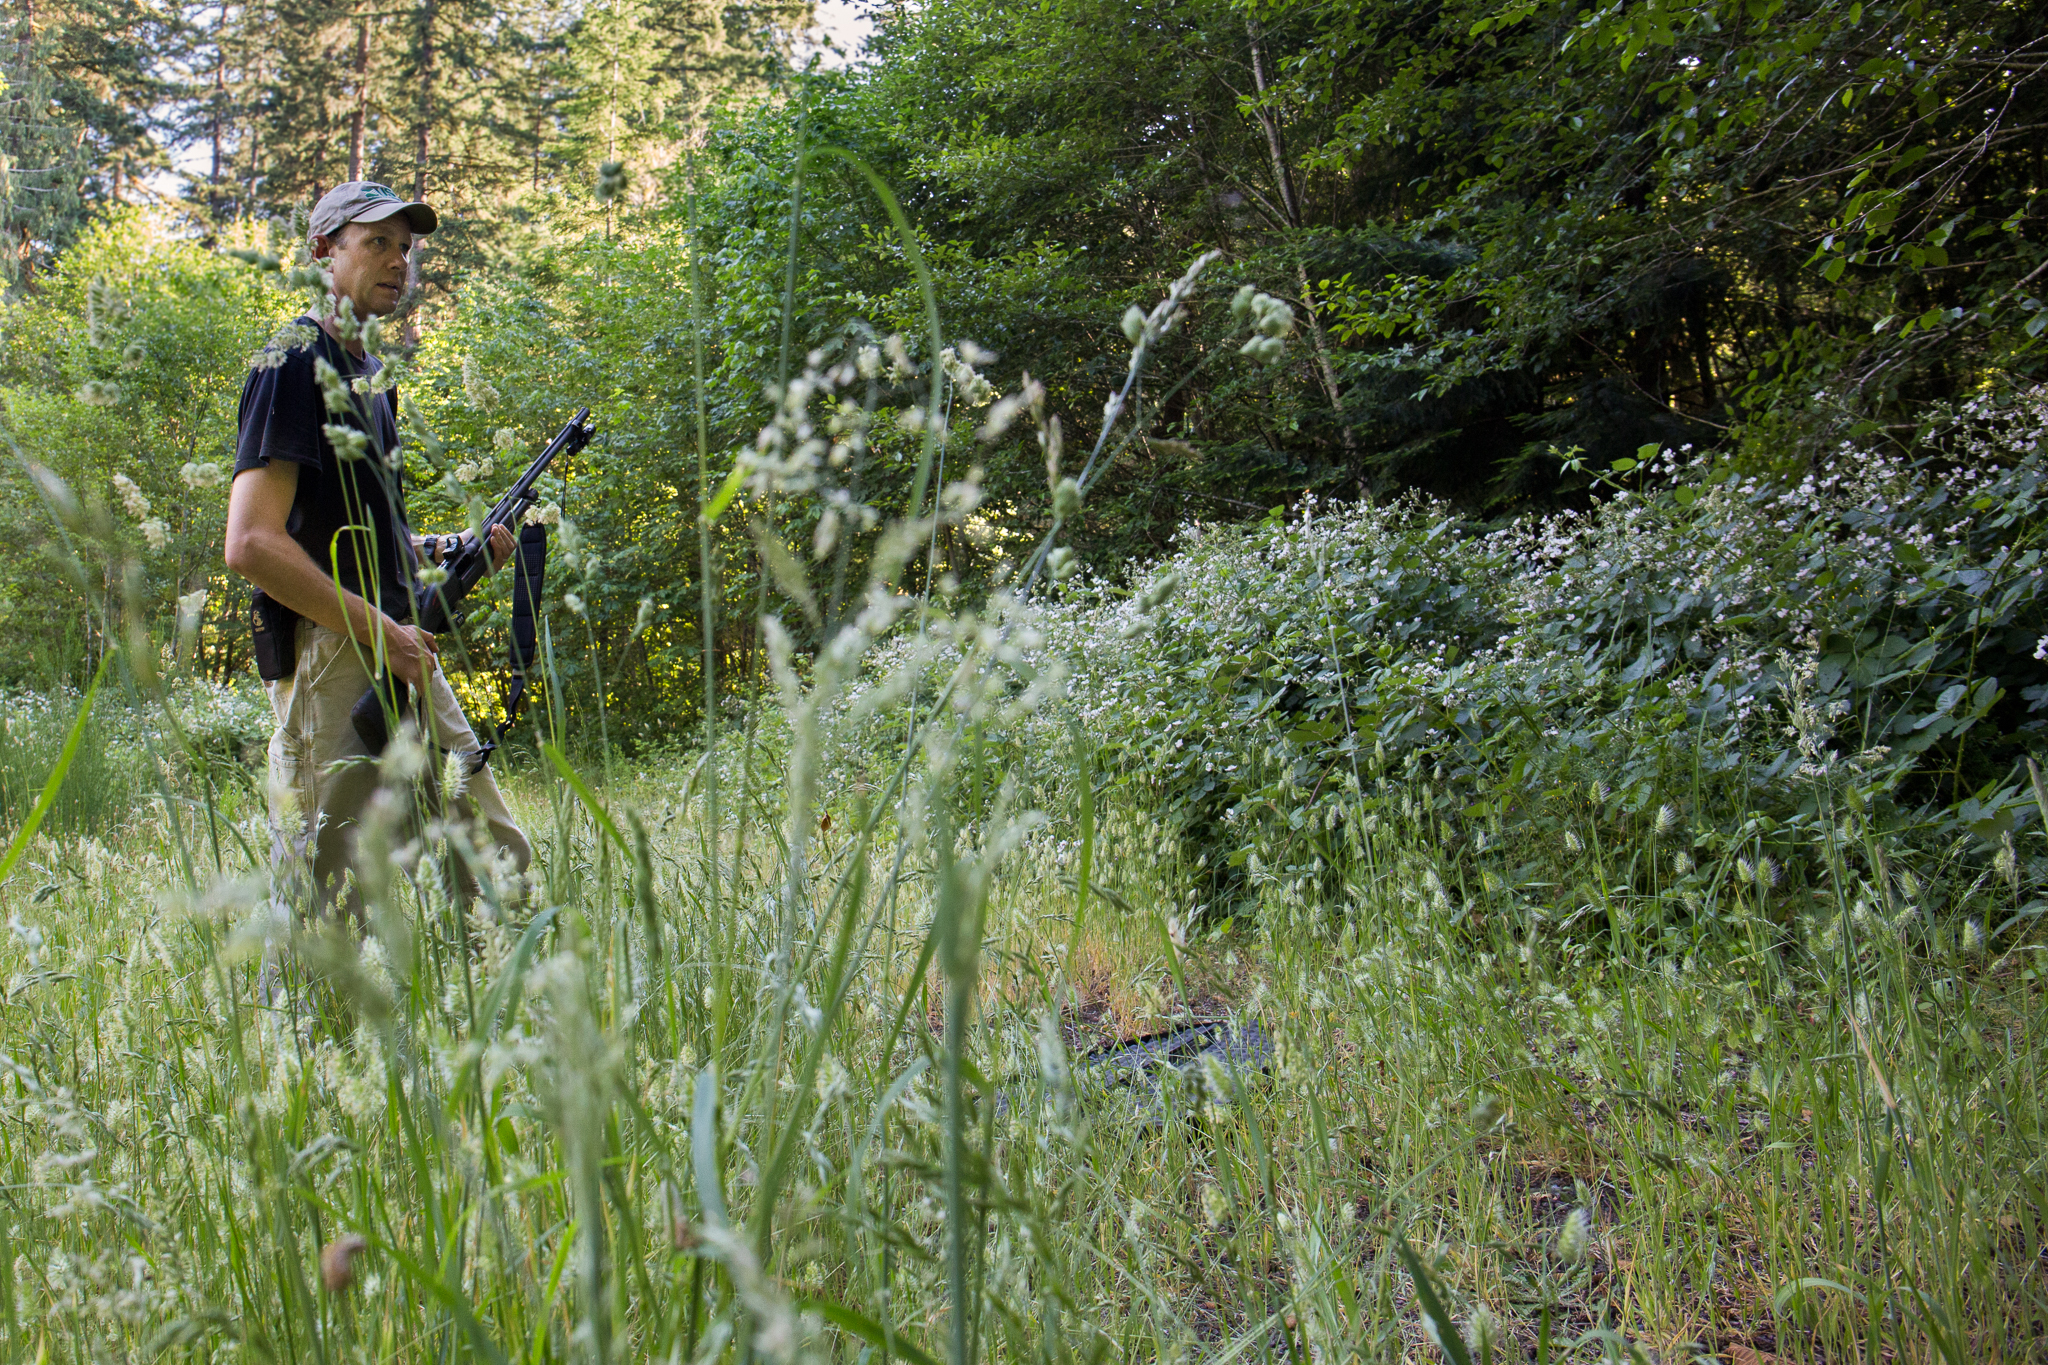 USGS biologist David Wiens stands at the edge of a clearing with the specially outfitted shotgun he uses to remove invasive barred owls from what was historically spotted owl habitat.